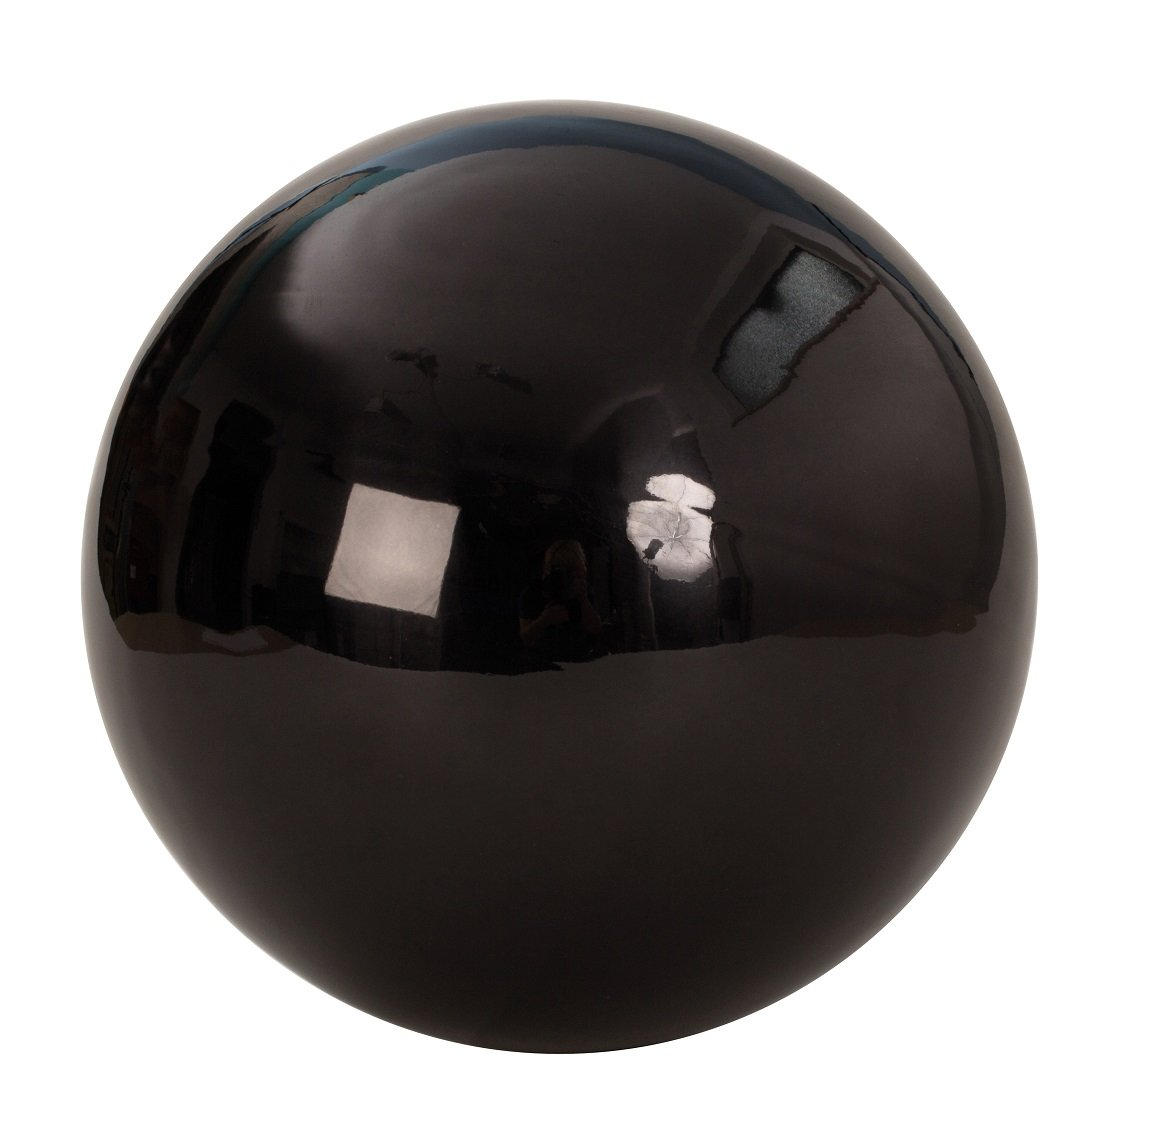 Large Decorative Ball in Black approx. 25cm Stainless Steel Ball Bauble Christmas Decoration